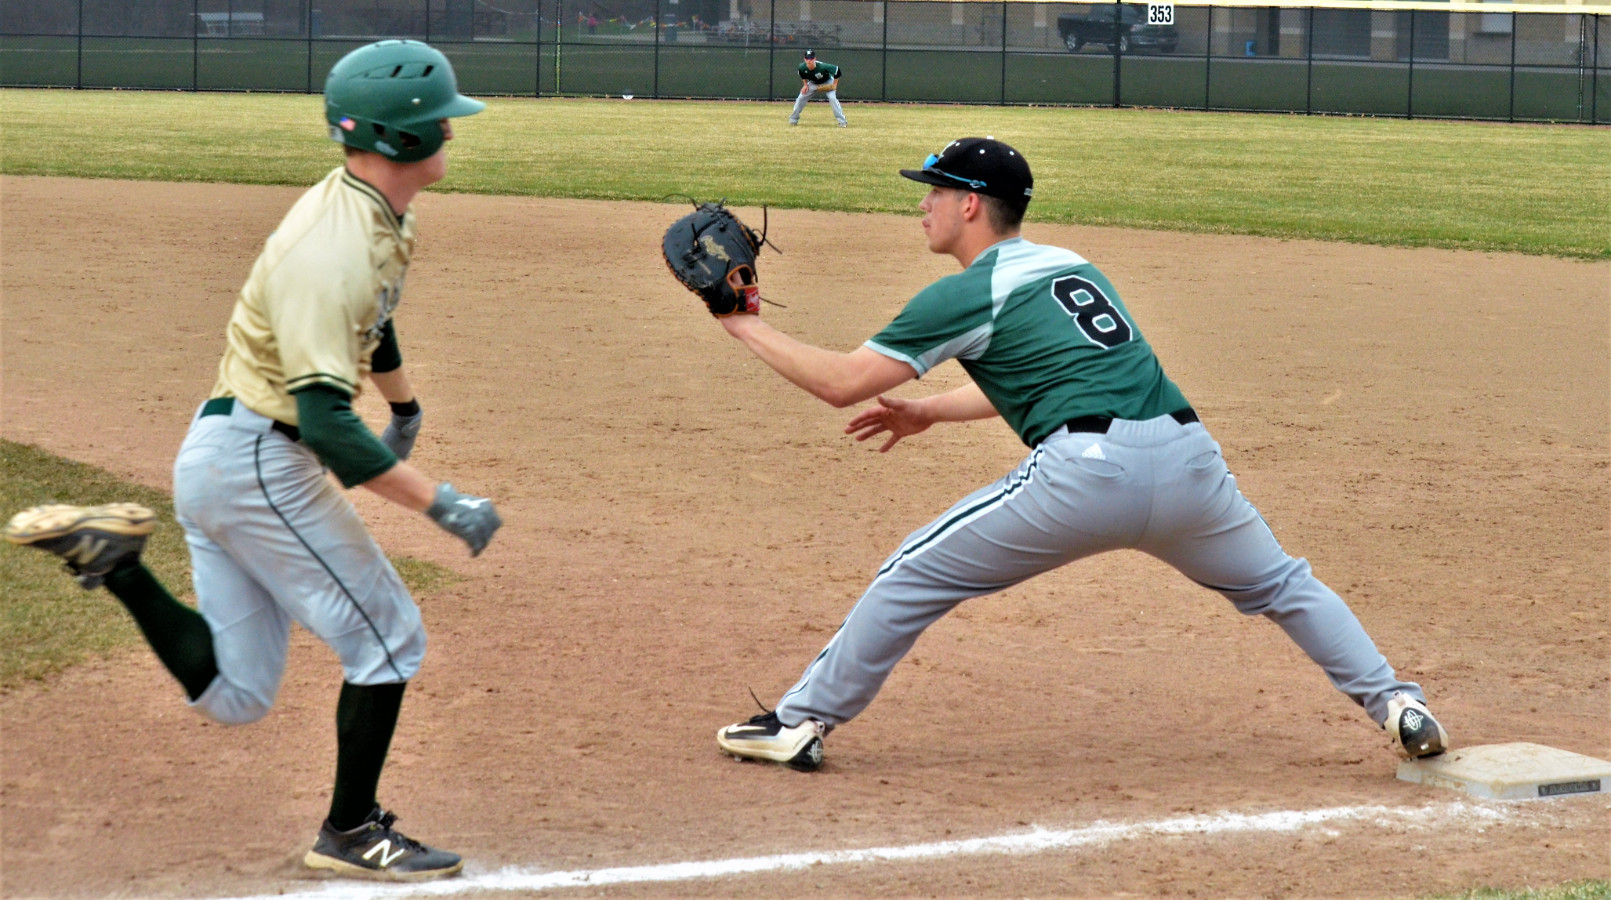 Nordonia Varsity Boys Baseball 4-23-18 Big Win Over St. Vincent St Mary 11-1 (photo gallery)